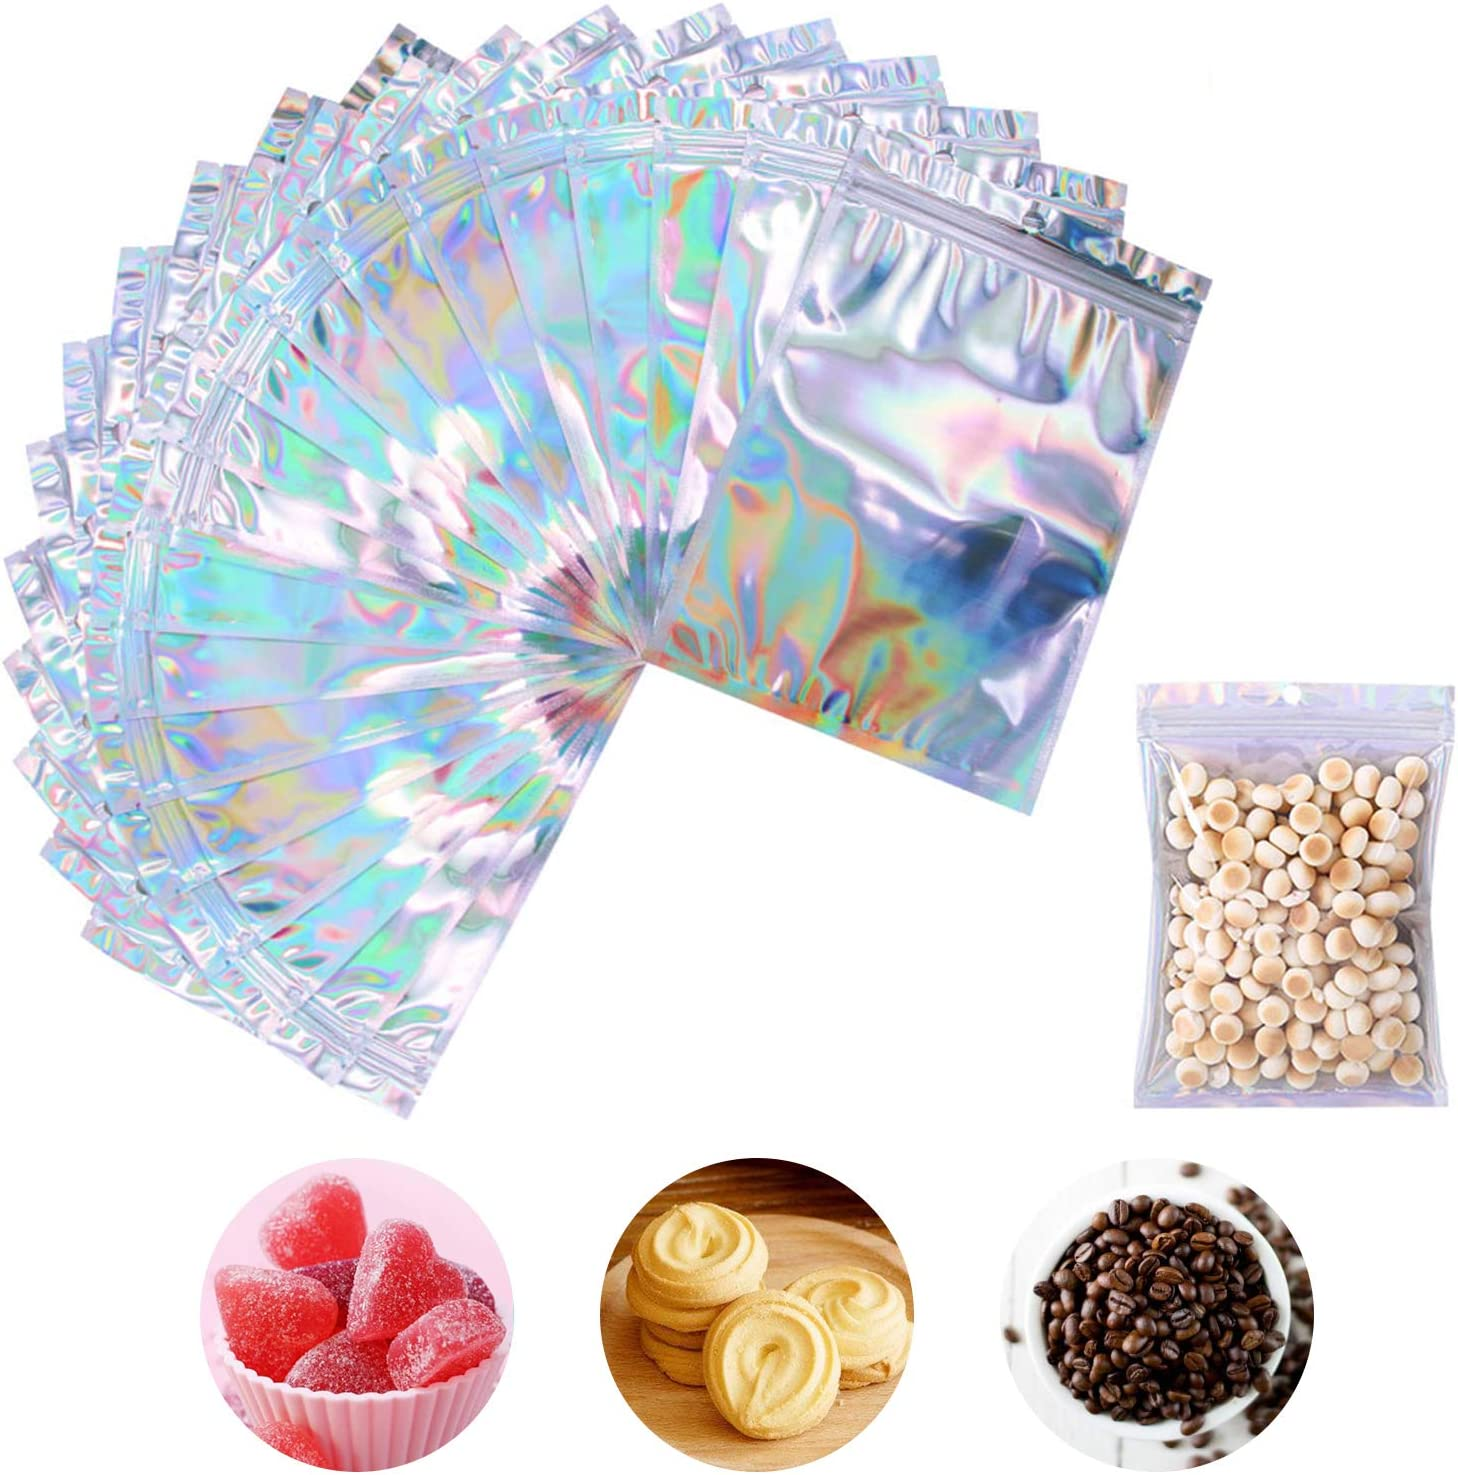 100 Pieces Holographic Bags for Packaging Products, Reusable Smell Proof Aluminum Foil Candy Cookie Food Snack Plastic Zip Lock Packaging Bags (Glossy Holographic, 3